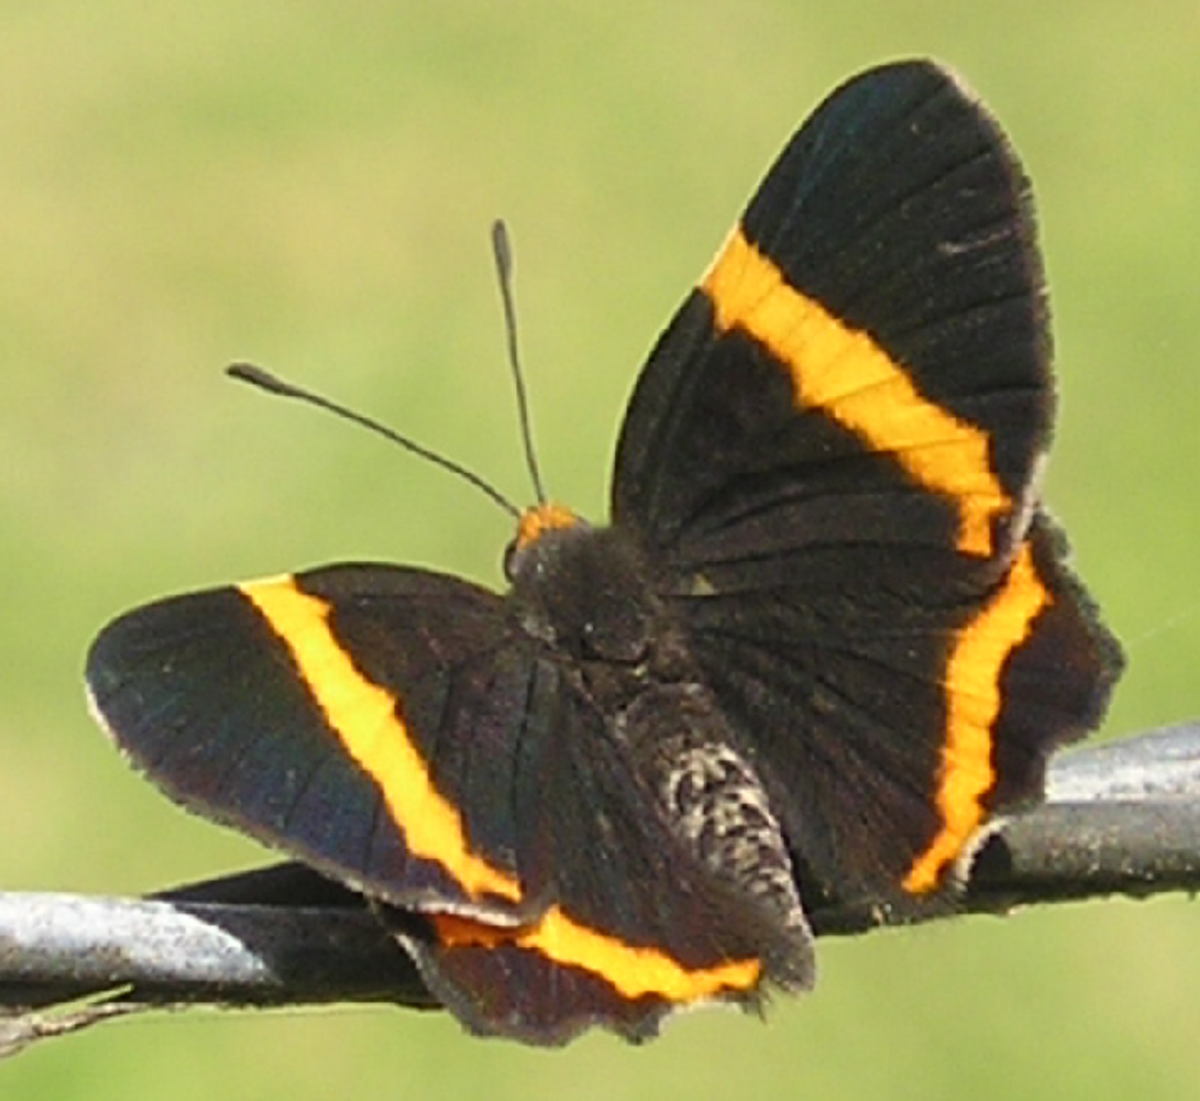 Black Butterfly with Golden Stripes